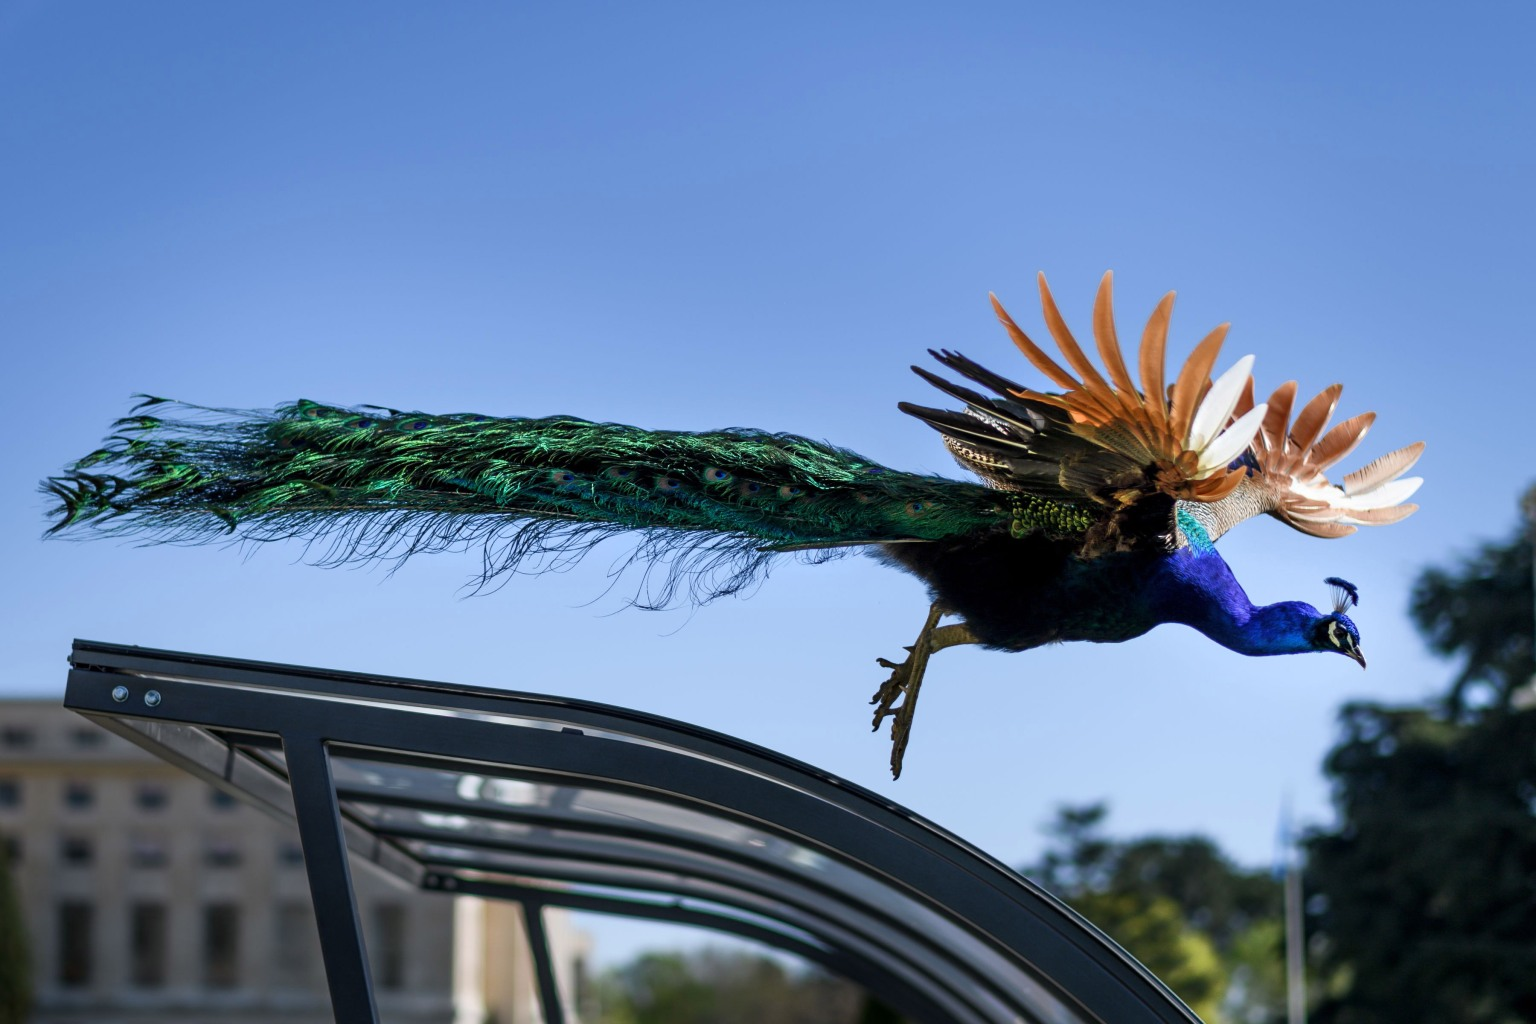 One of the famous peacocks of the United Nations offices in Geneva flies down from a bicycle shed on April 19. The peacocks roam freely on the grounds of Ariana Park, which surrounds the U.N. offices. FABRICE COFFRINI/AFP/Getty Images